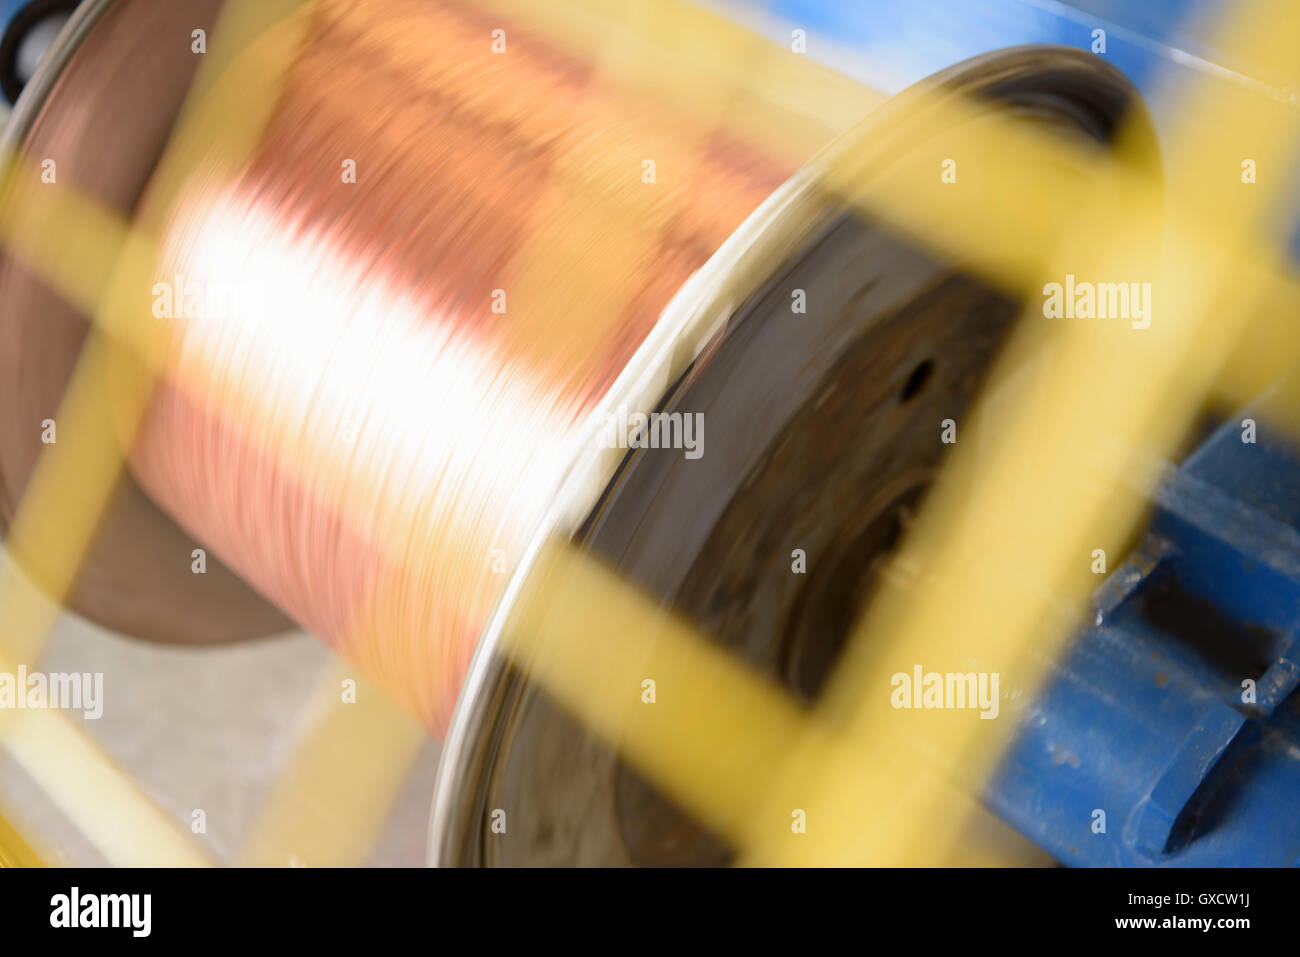 Spinning reel of copper cable in cable factory, close up - Stock Image